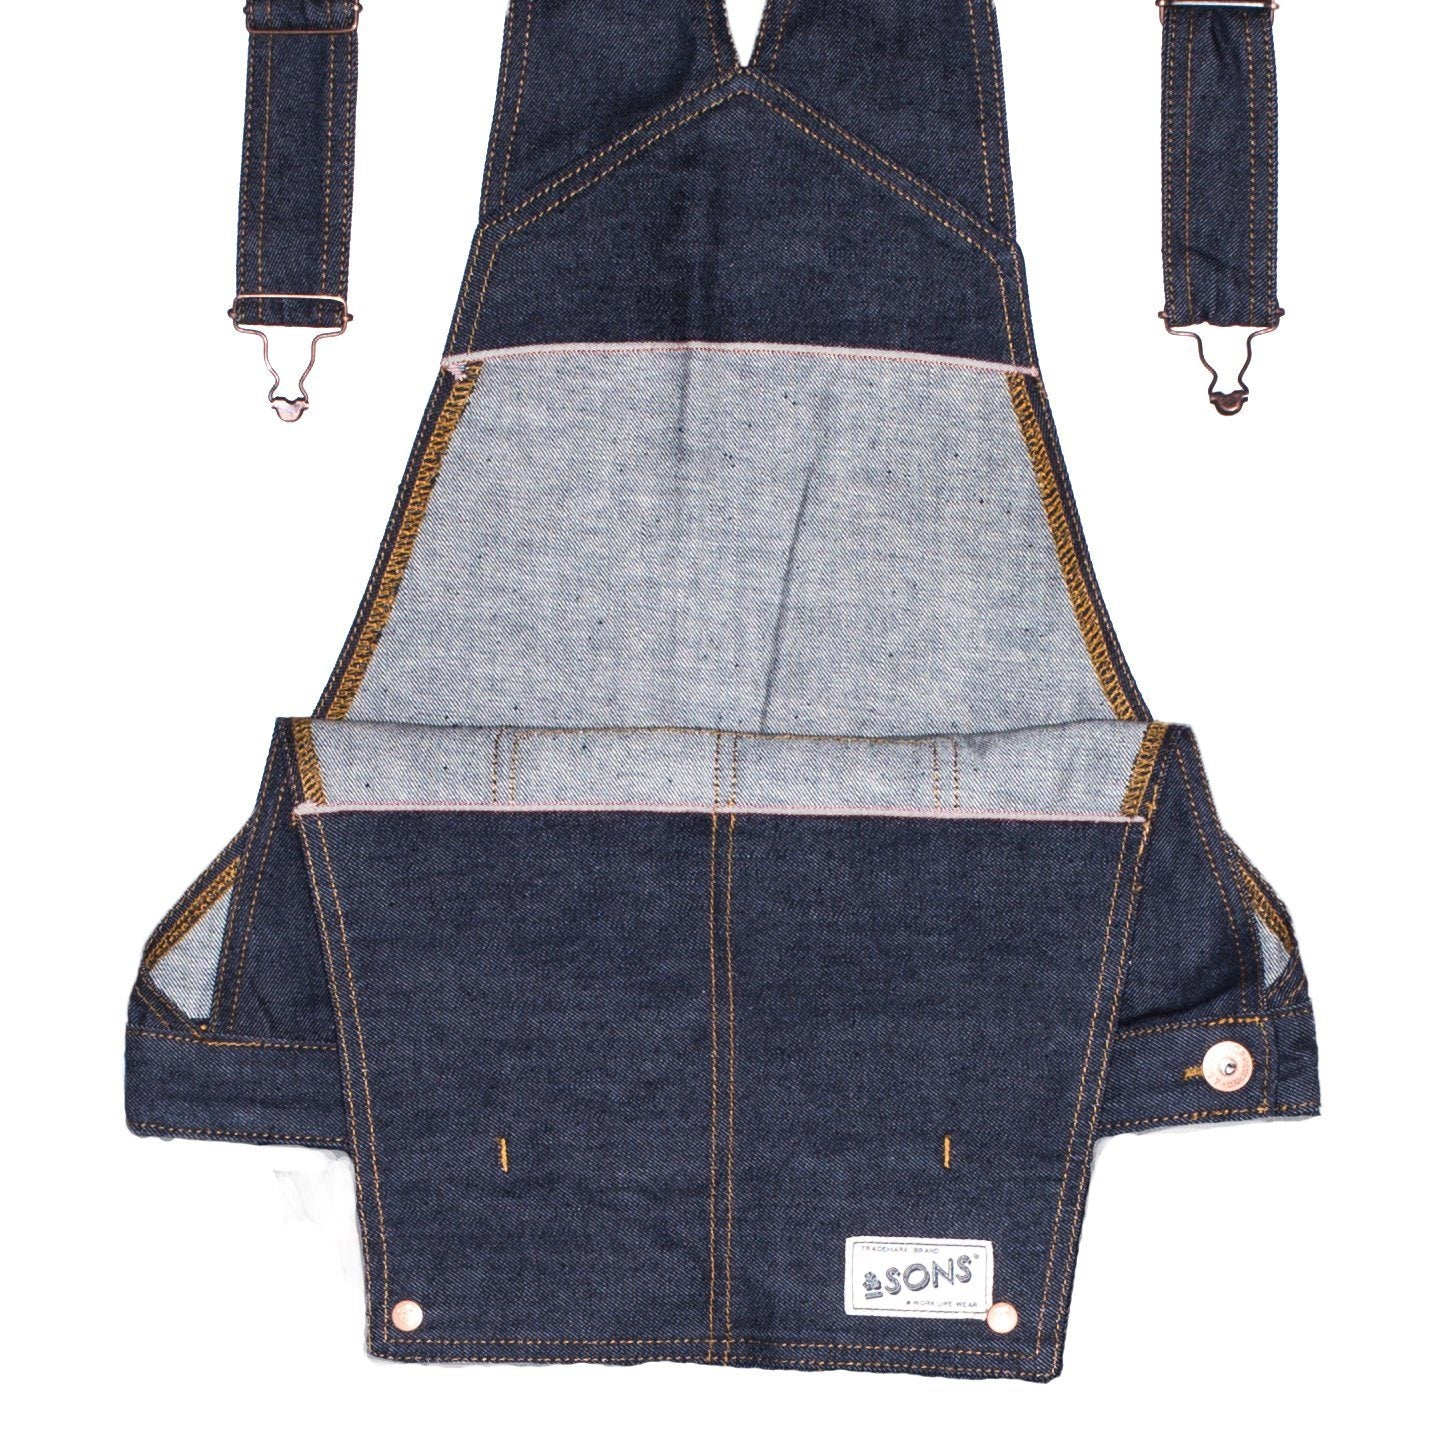 &SONS Women's Union Overalls Overalls &sonsclothing